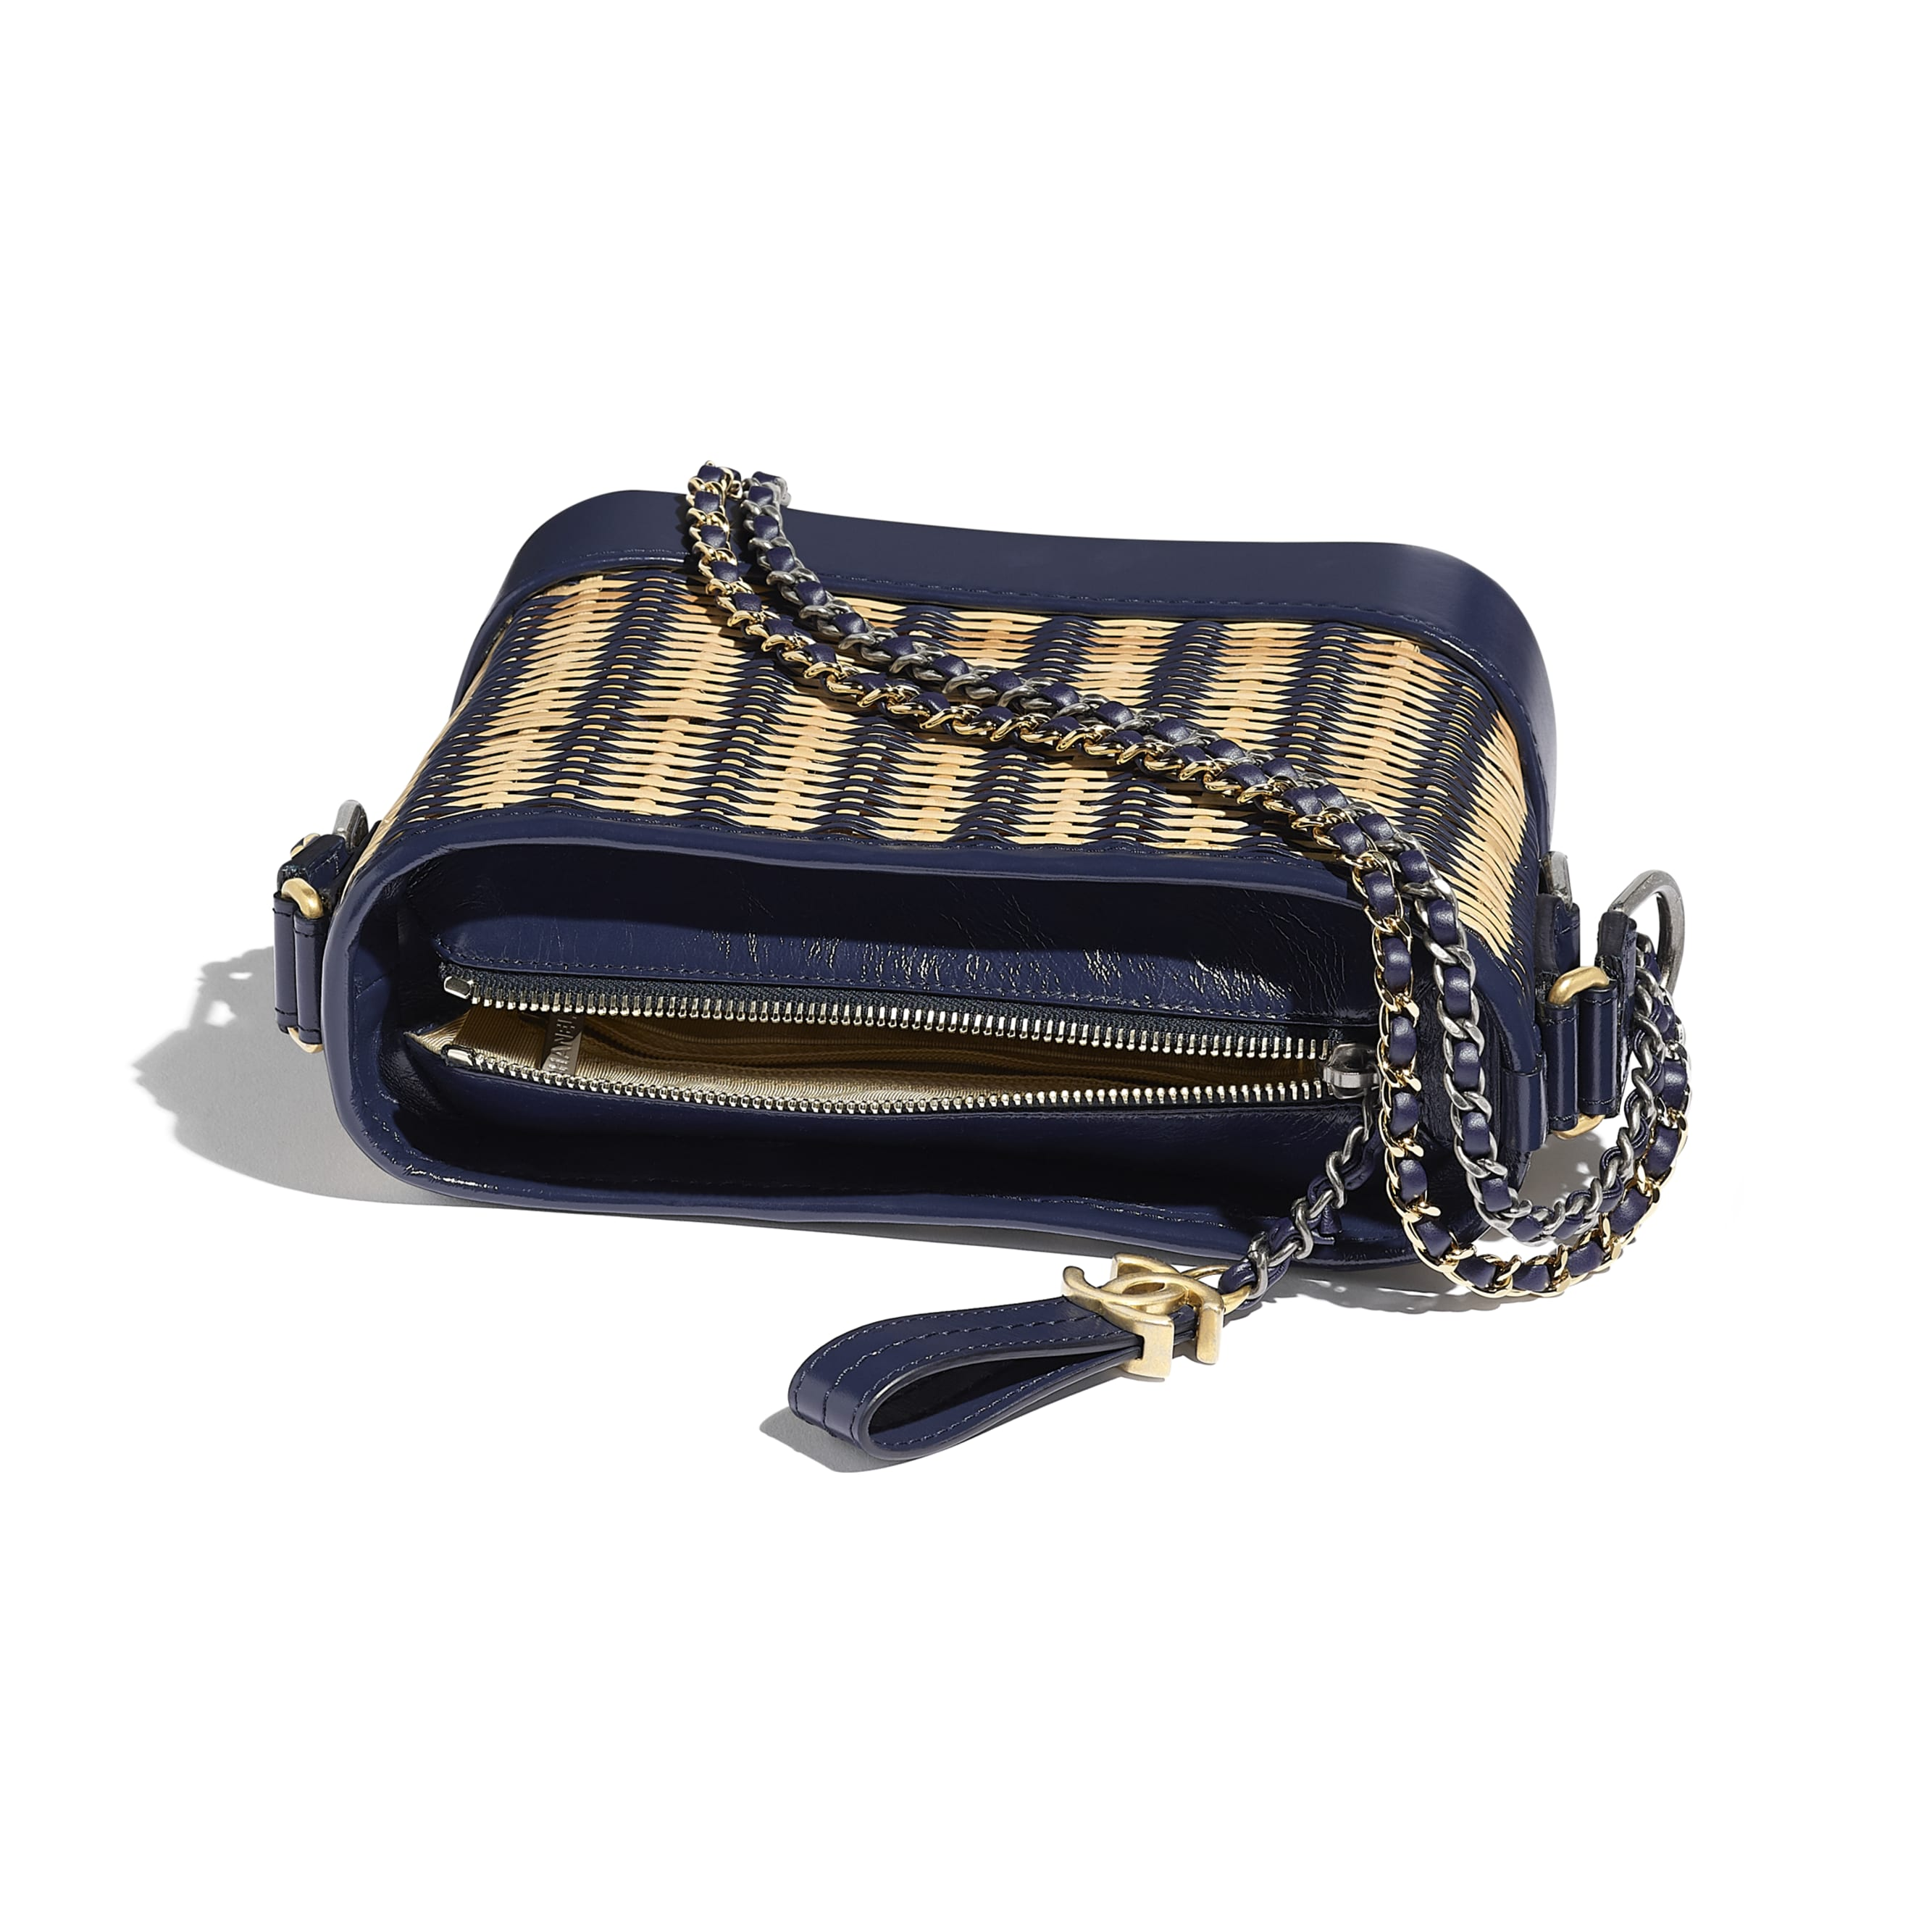 CHANEL'S GABRIELLE Small Hobo Bag - Beige & Navy Blue - Rattan, Calfskin, Gold-Tone & Silver-Tone Metal - CHANEL - Other view - see standard sized version